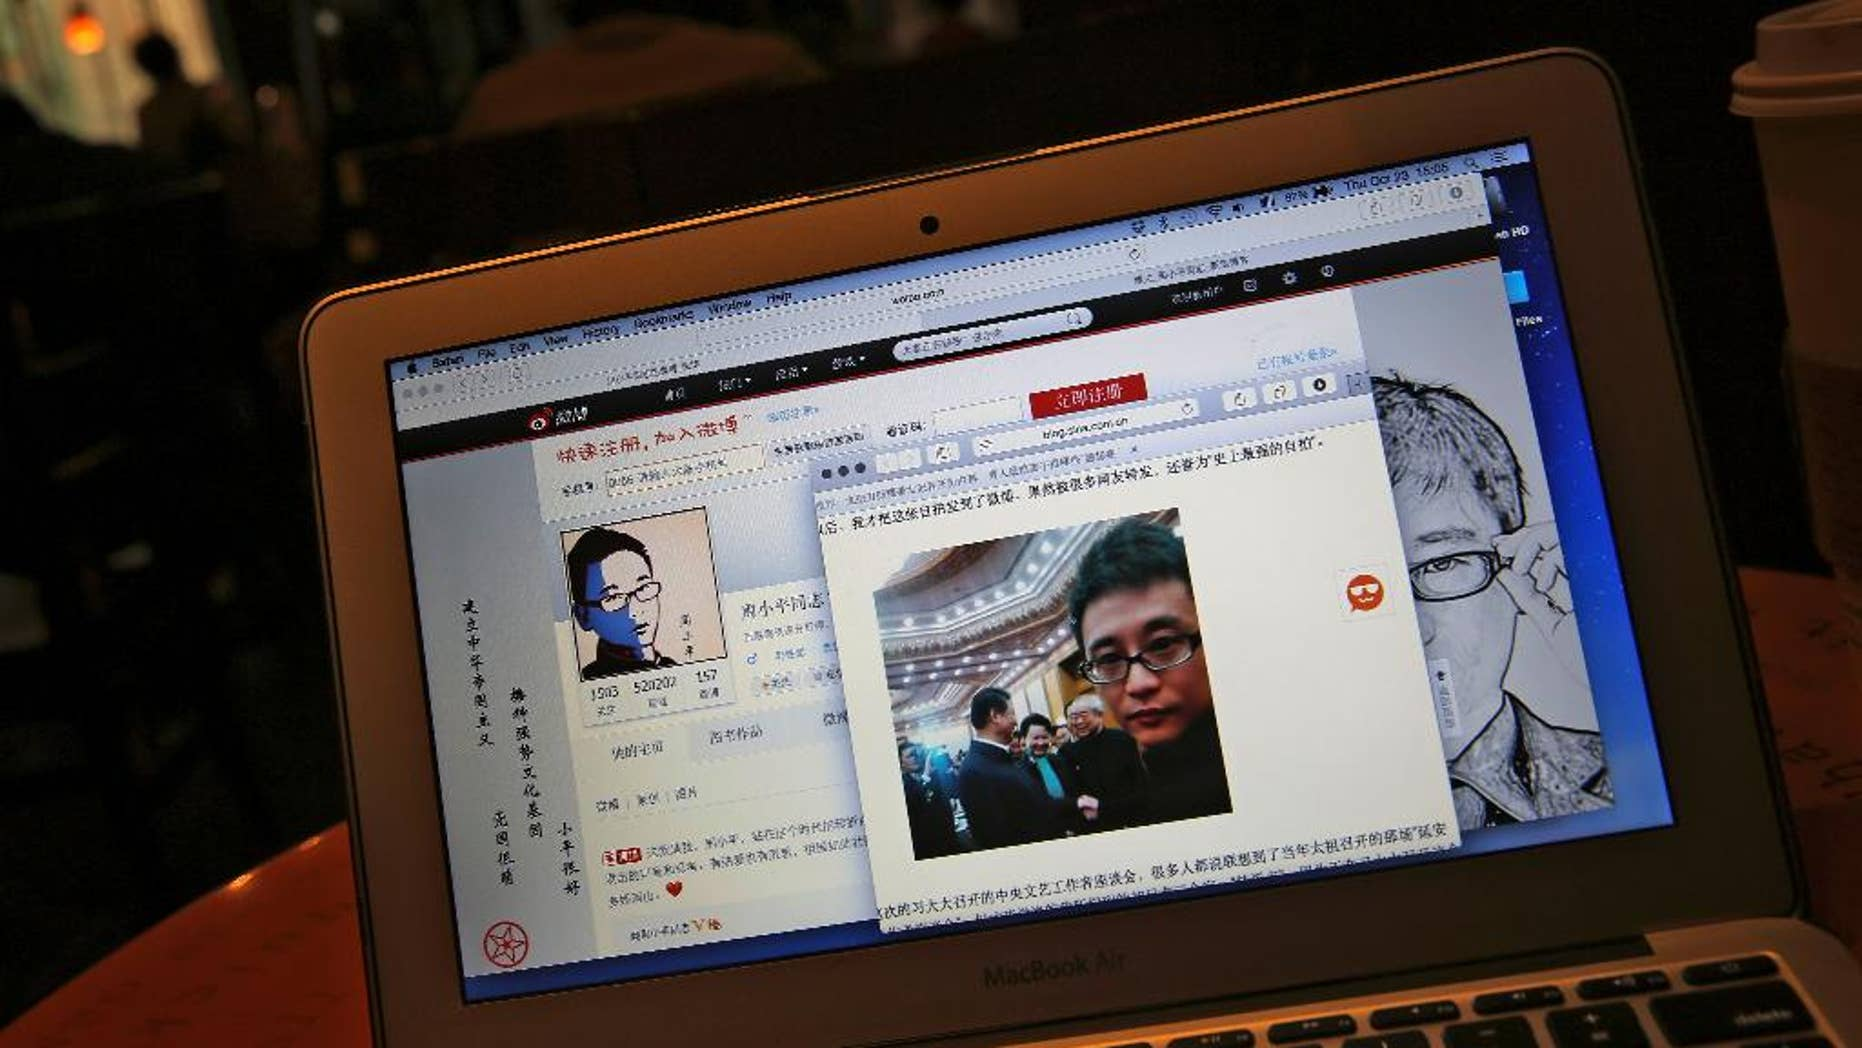 """This screen shot shows Chinese Patriotic Blogger, Zhou Xiaoping's Sina Weibo account and his selfie near Chinese President Xi Jinping with officials at the Great Hall of the People, in his blog, in Beijing, China Thursday, Oct. 23, 2014. He shook hands with President Xi Jinping earlier this month in a rare literature and arts meeting, where the 33-year-old blogger sat along with Chinese novelist and Nobel literature laureate Mo Yan. Zhou said in his blog that Xi told him to keep spreading """"positive energy on the Internet."""" (AP Photo/Andy Wong)"""